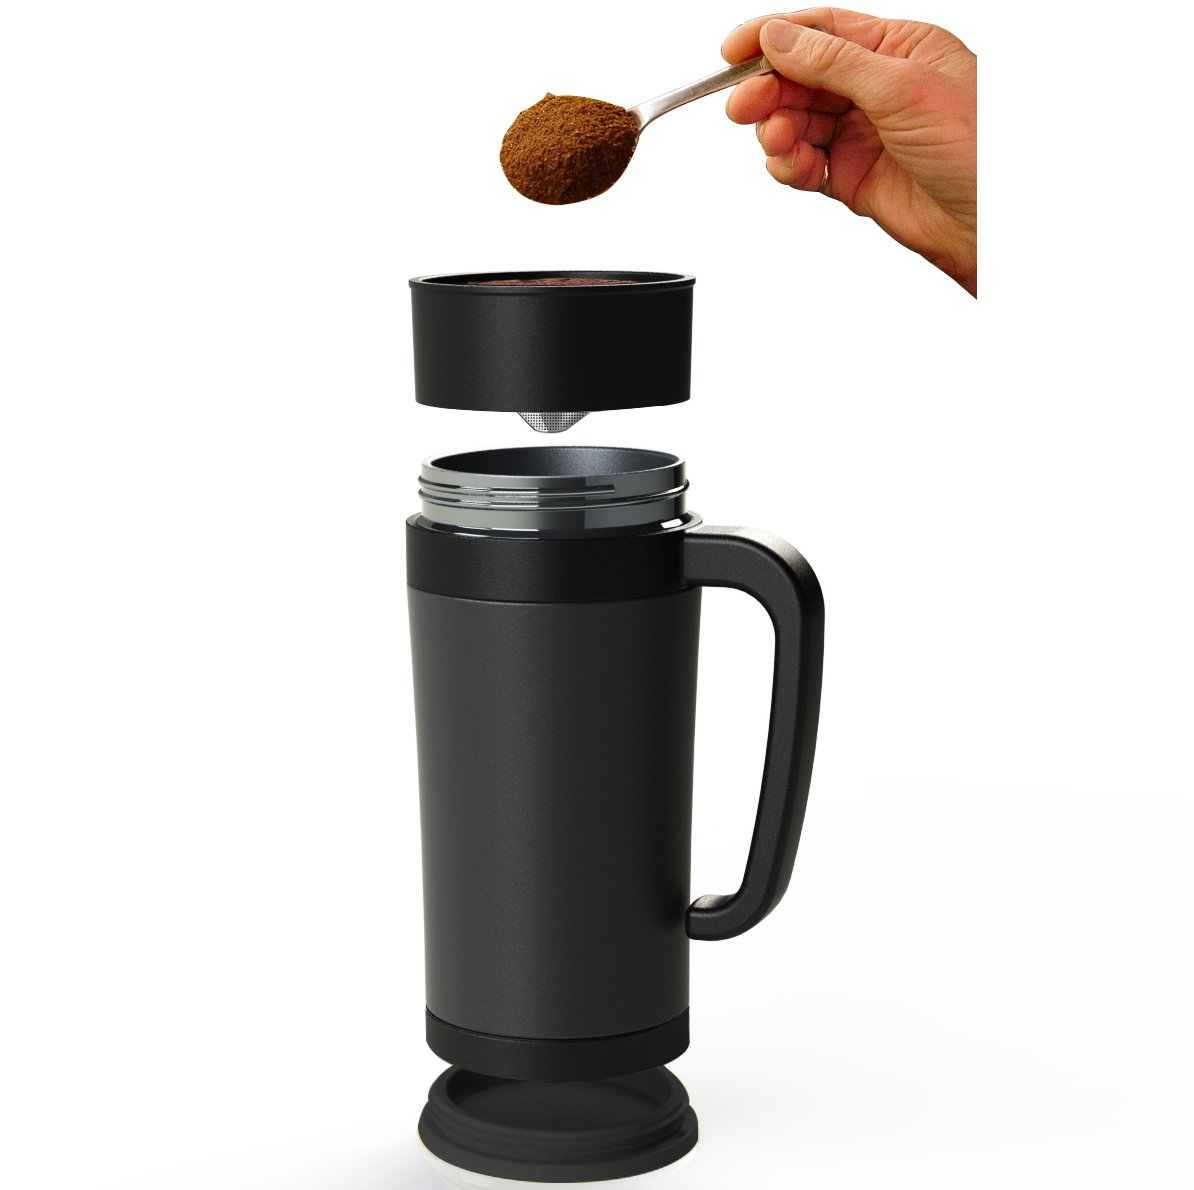 Image Result For Thermal Coffee Maker